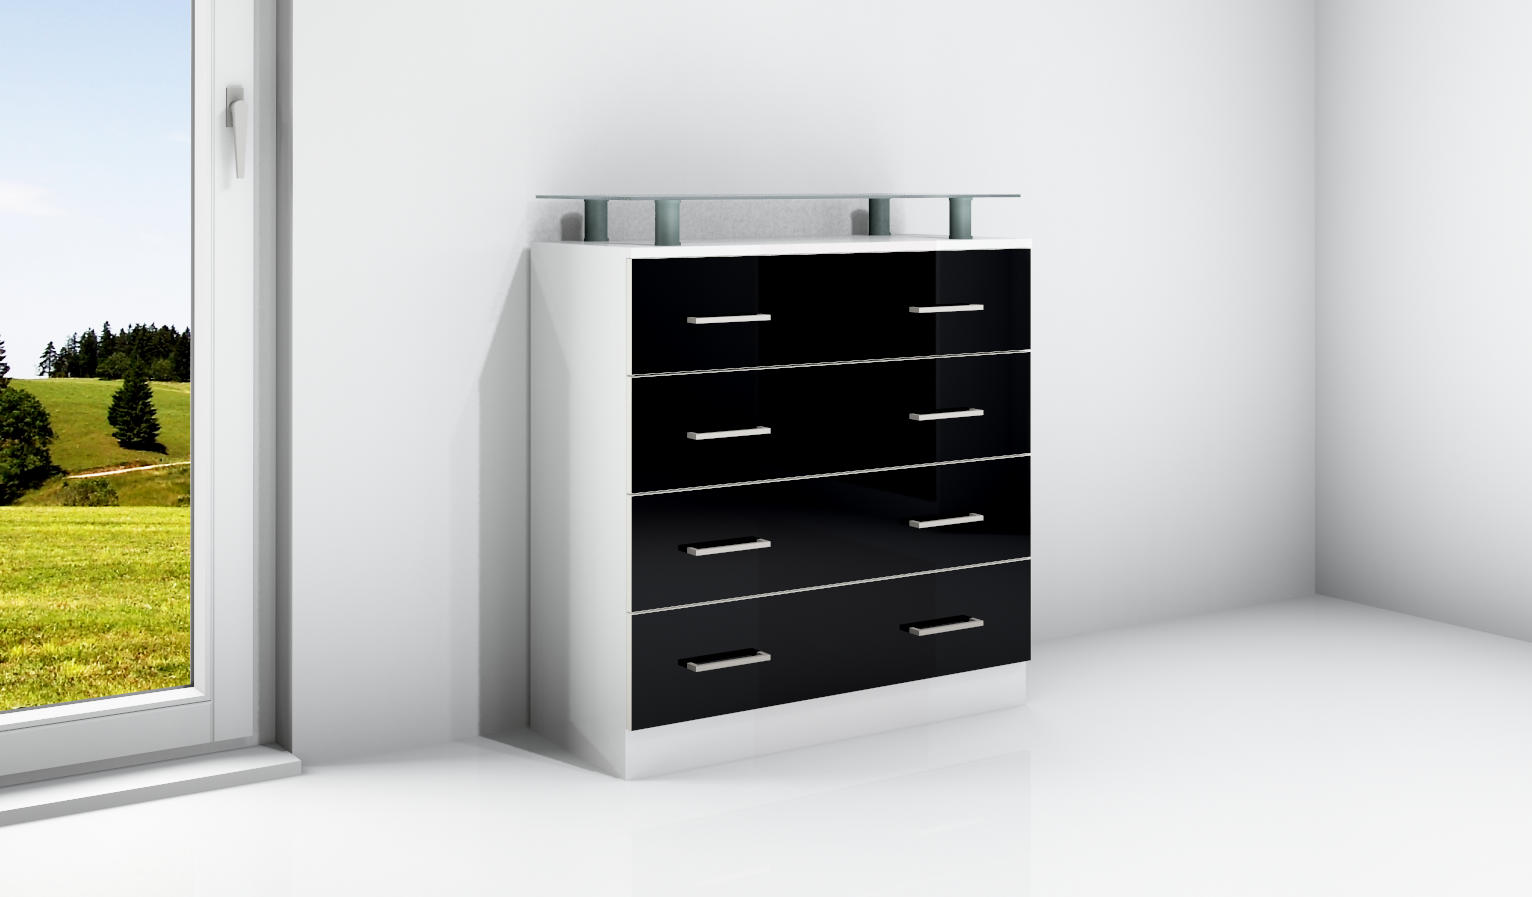 kommode v1 anrichte sideboard schrank m bel flur diele. Black Bedroom Furniture Sets. Home Design Ideas